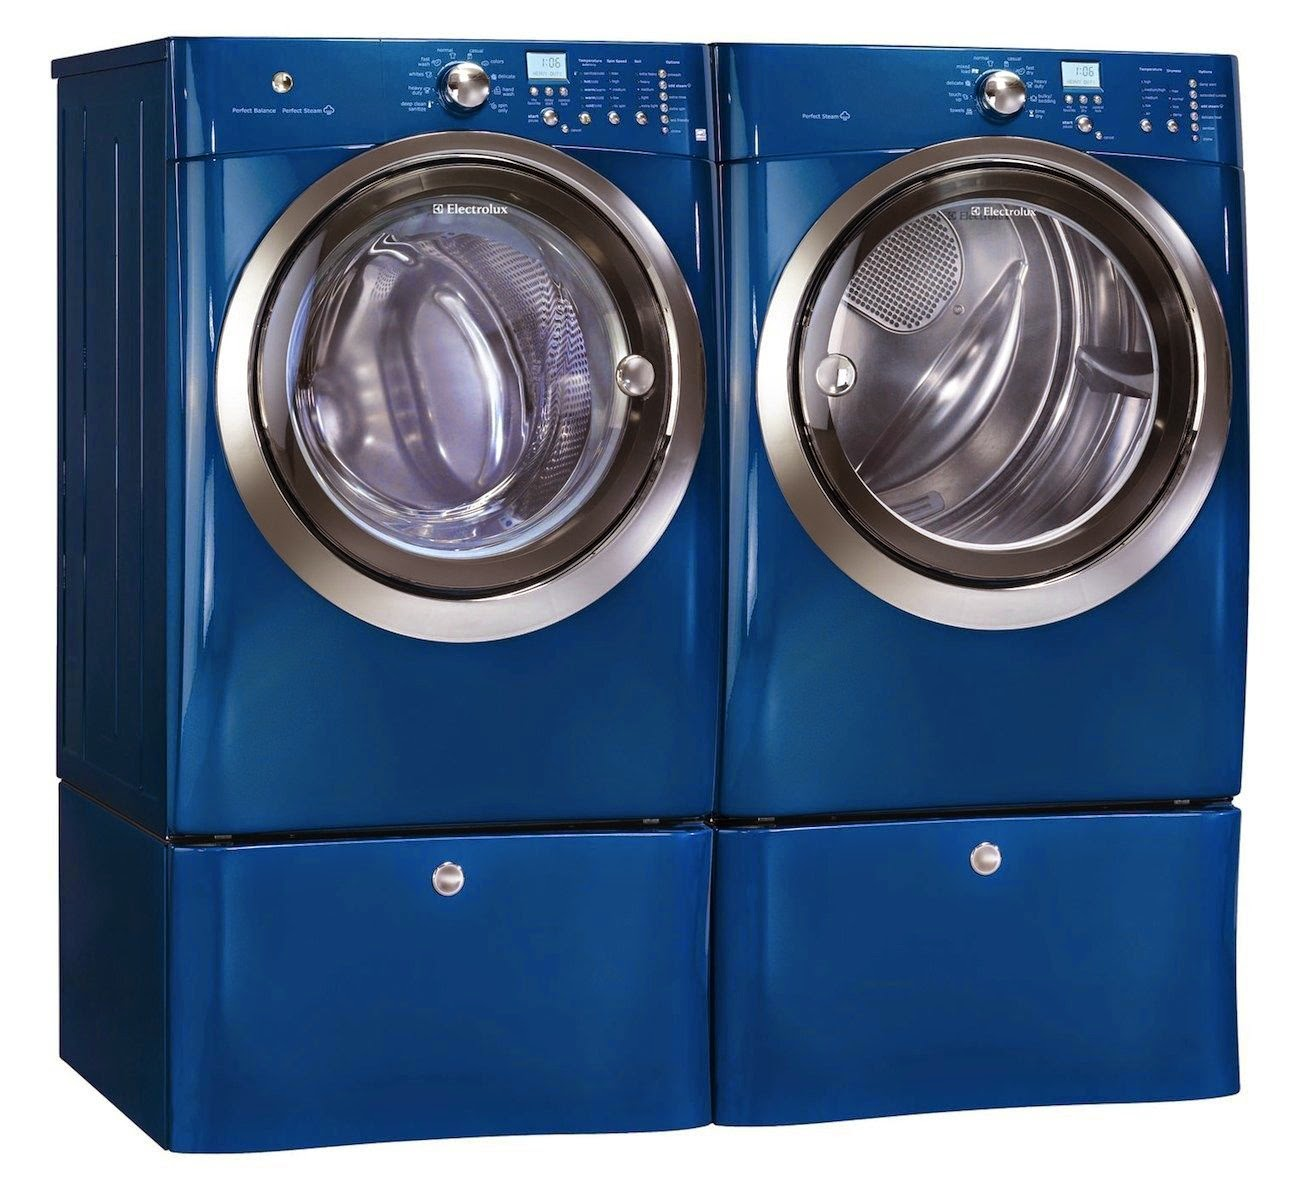 Washer Dryer Sets Front Load Washer And Dryer Sets